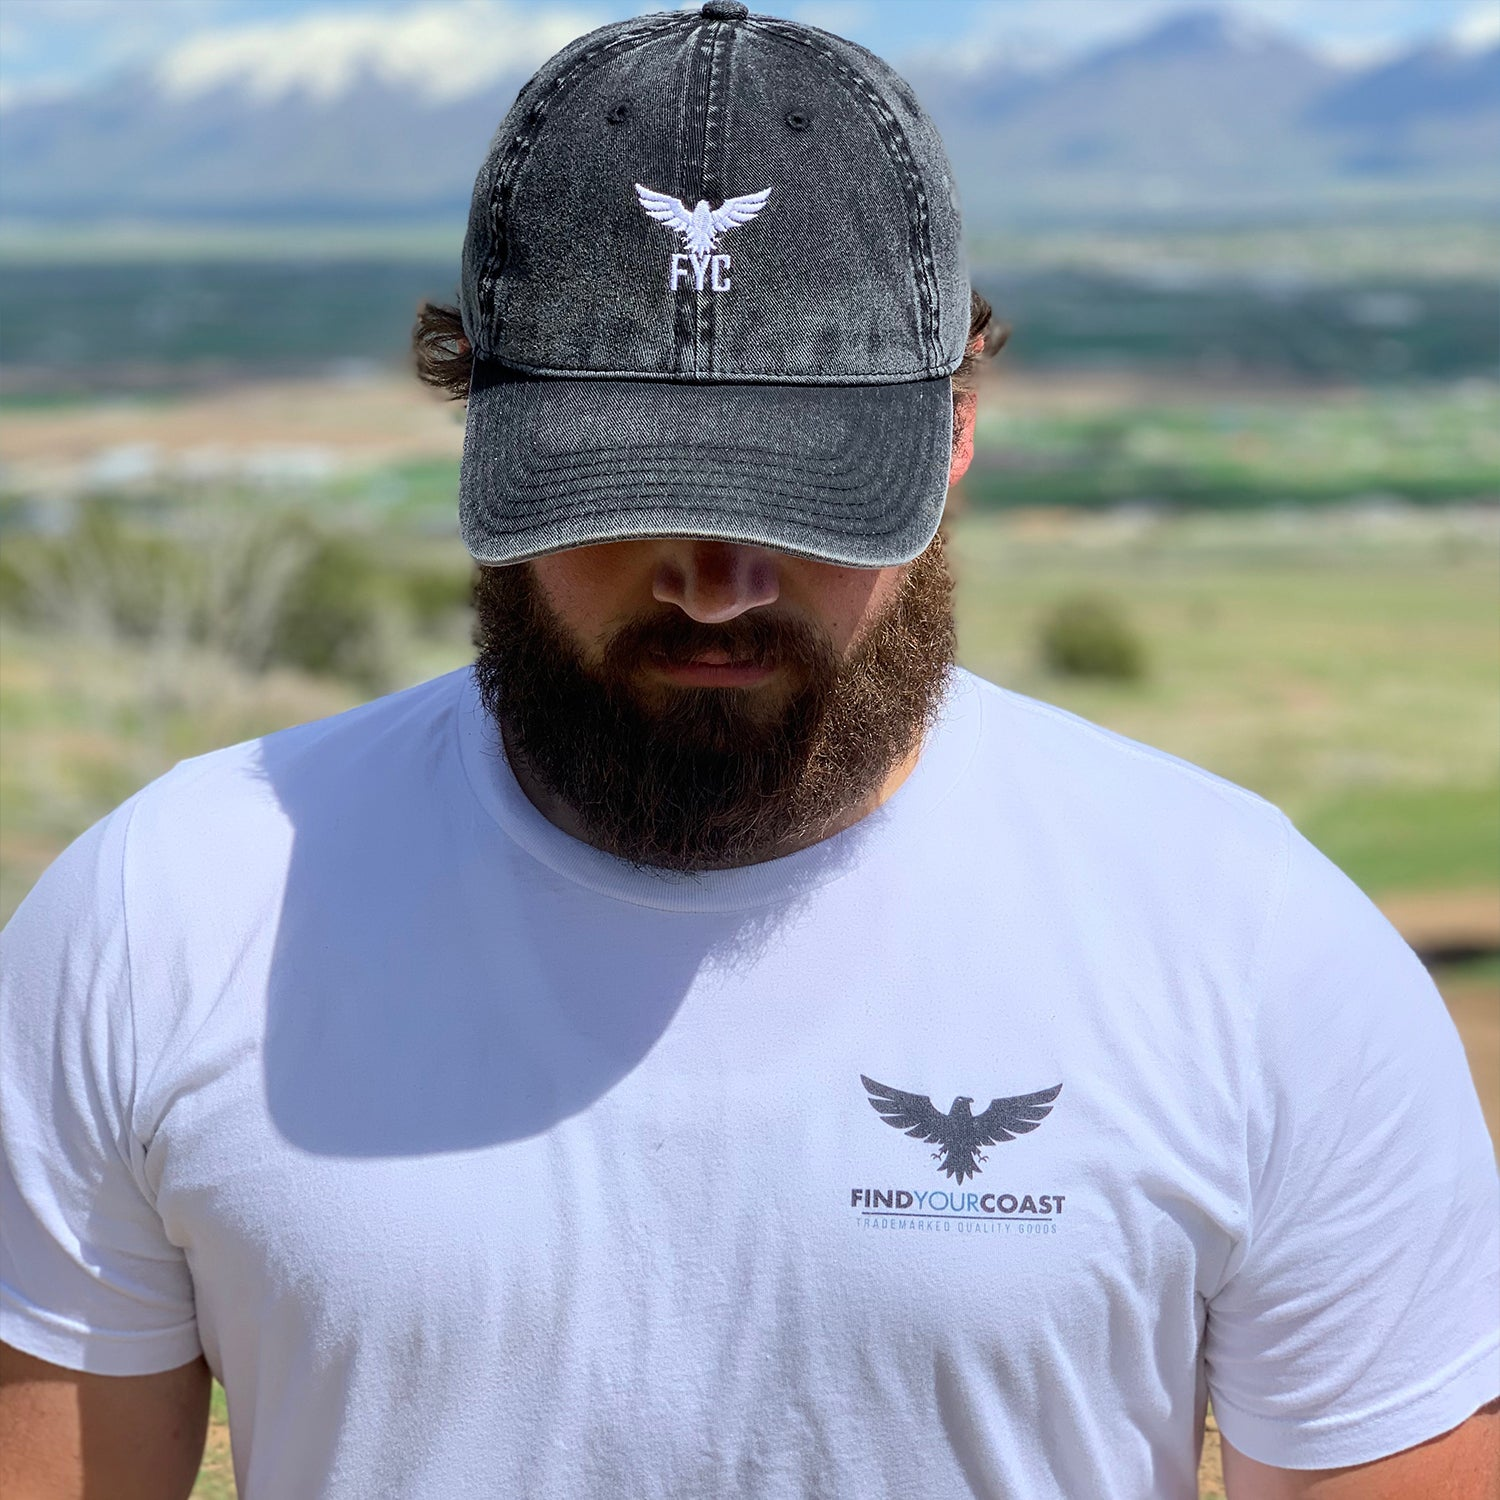 Find Your Coast outdoors shirts hats